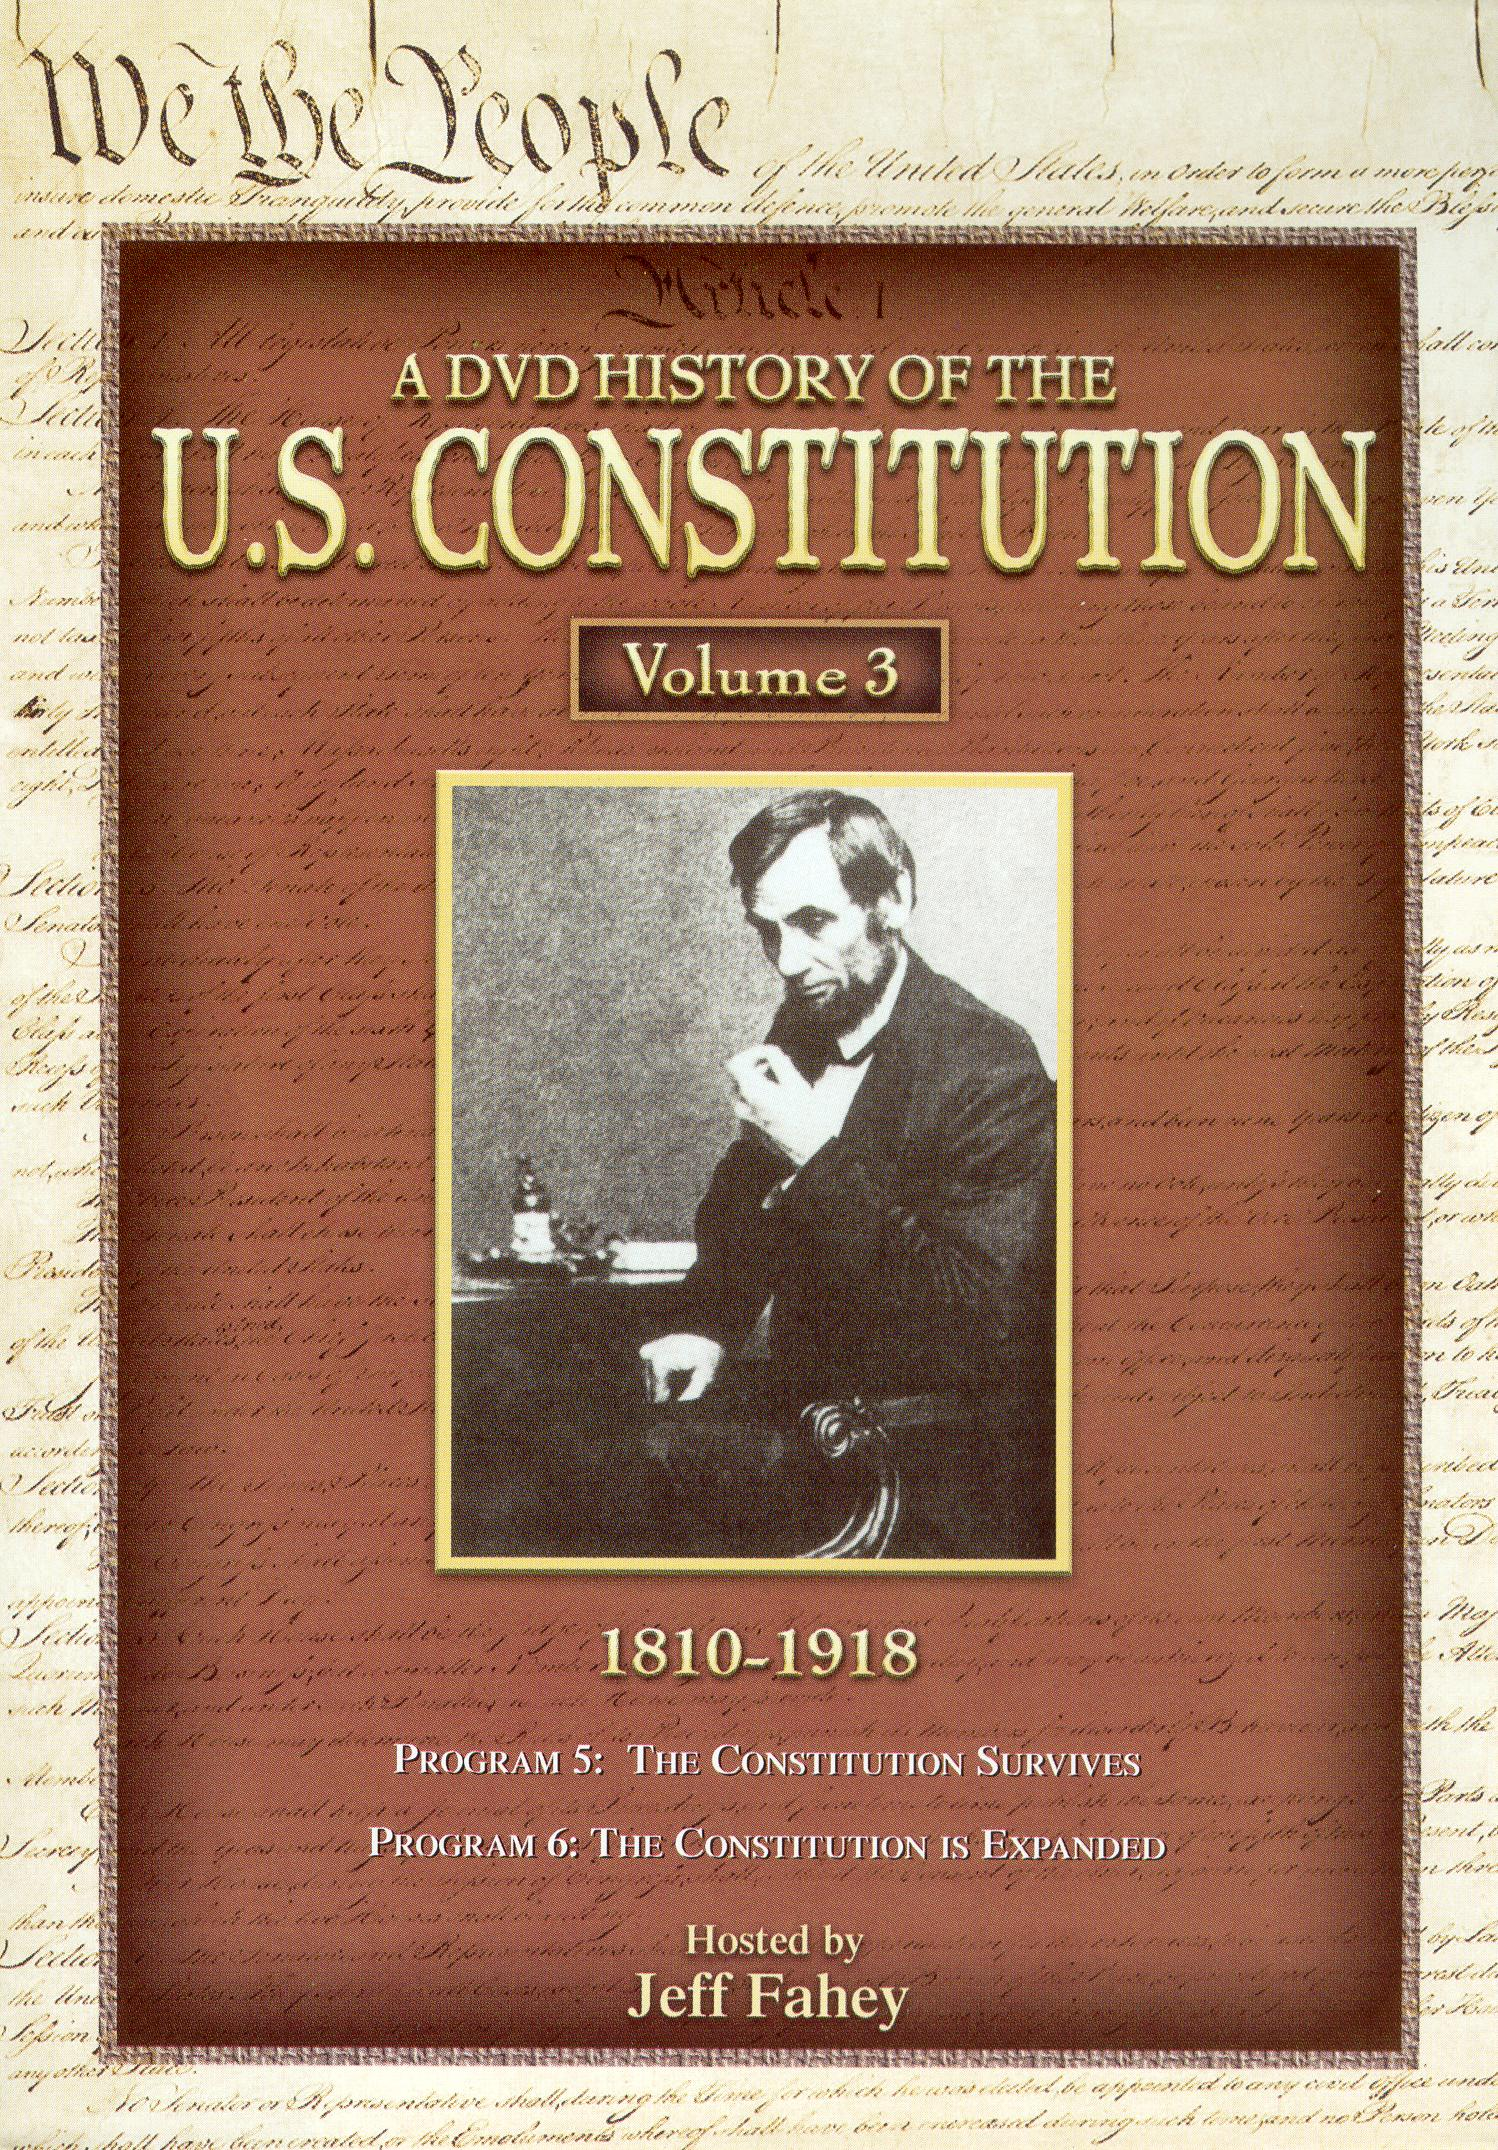 A DVD History of the U.S. Constitution, Vol. 3: 1810-1918